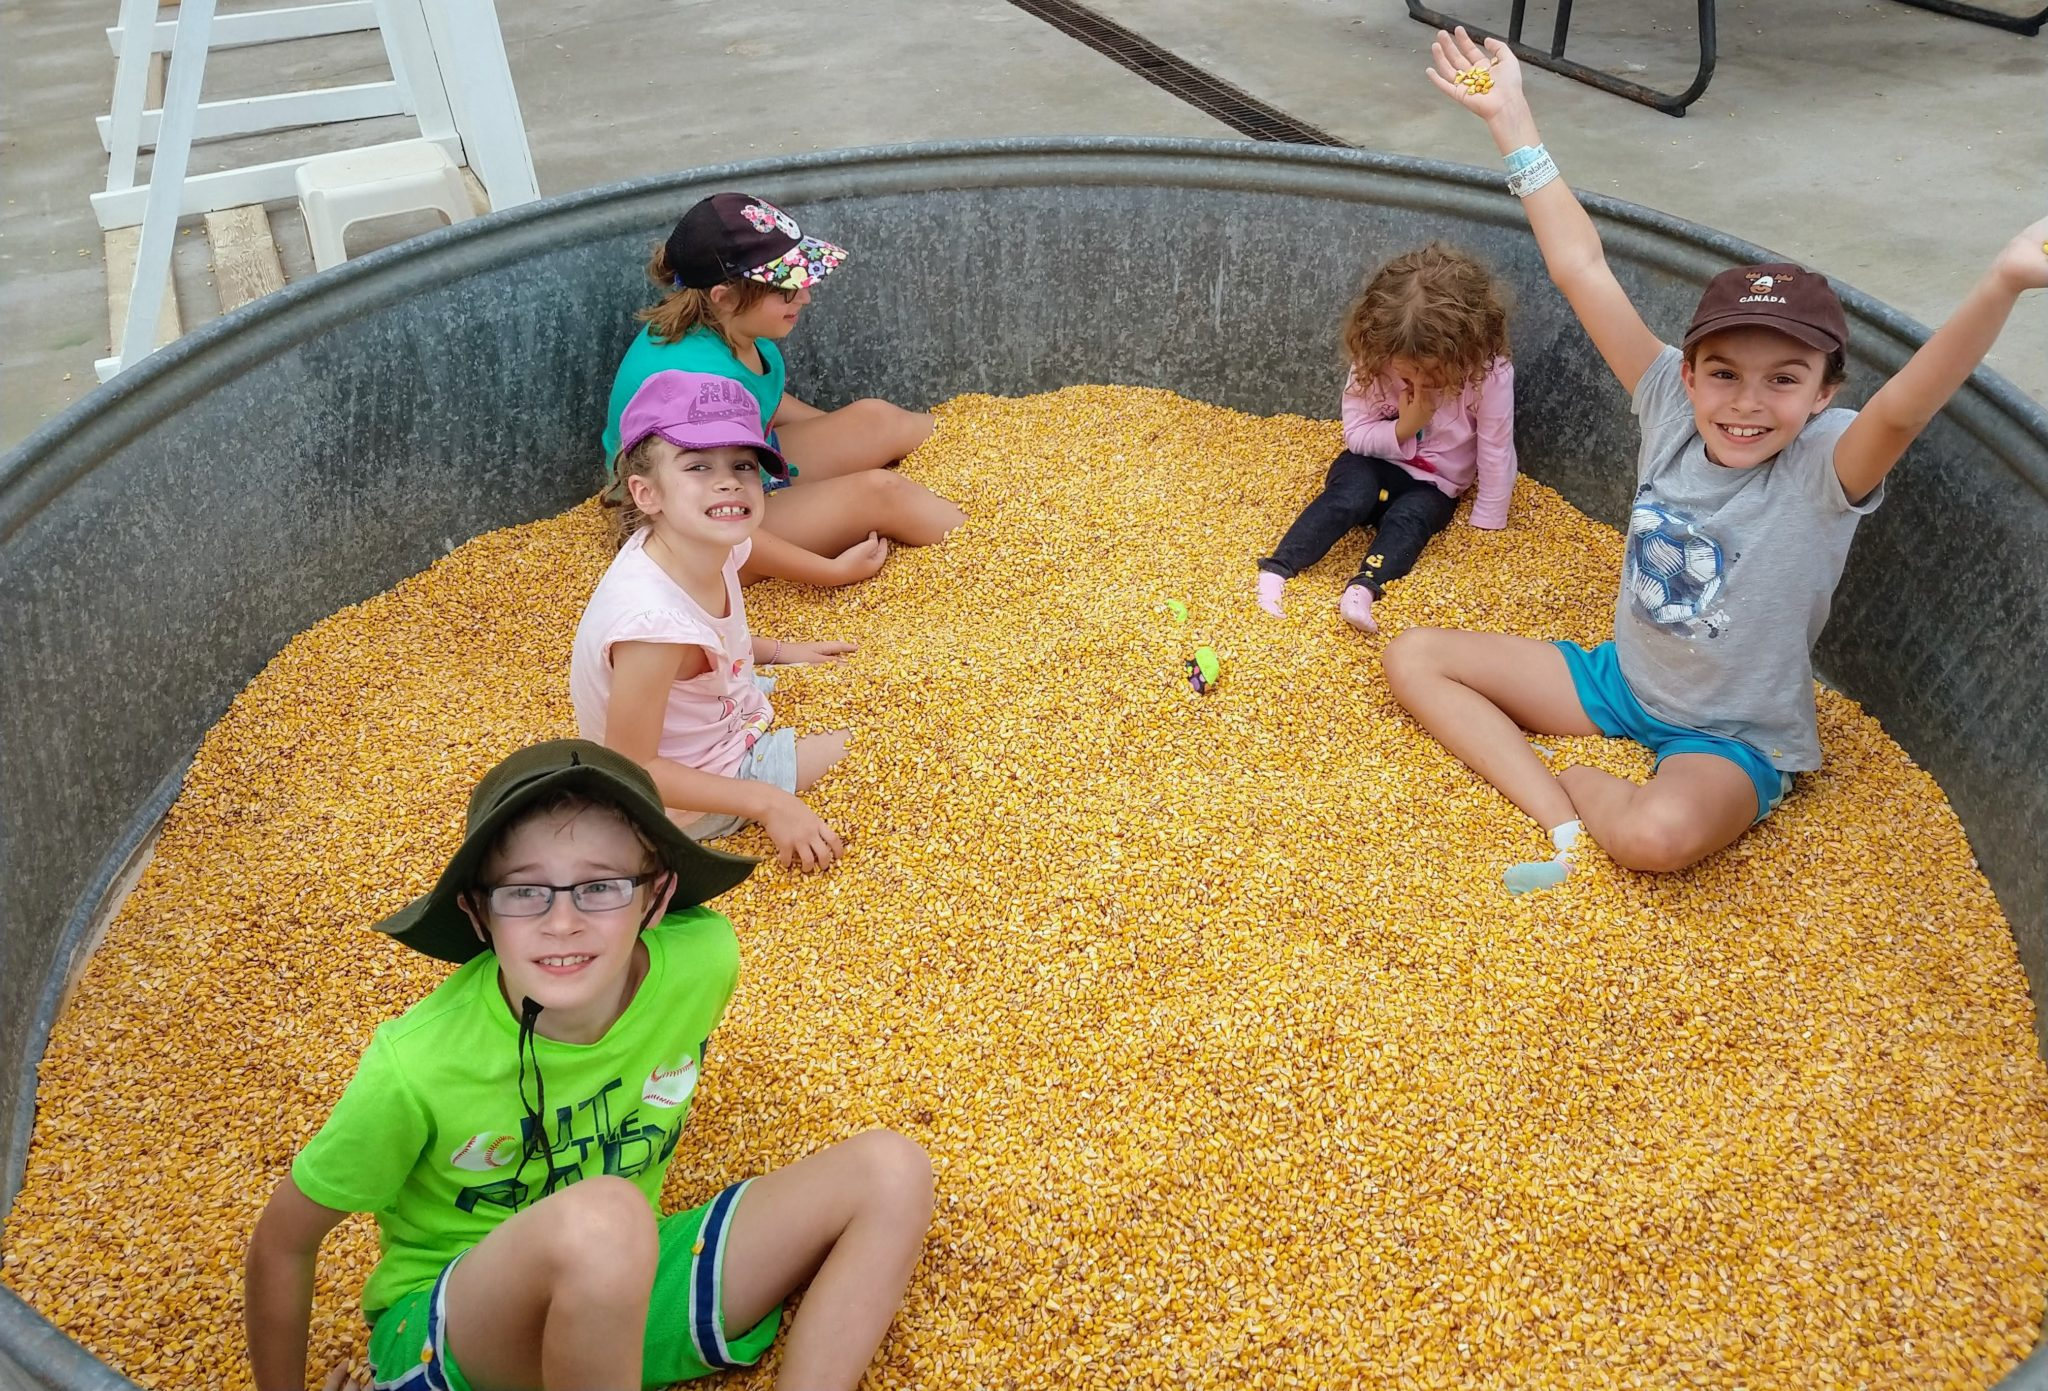 Kids playing in dried corn kernels